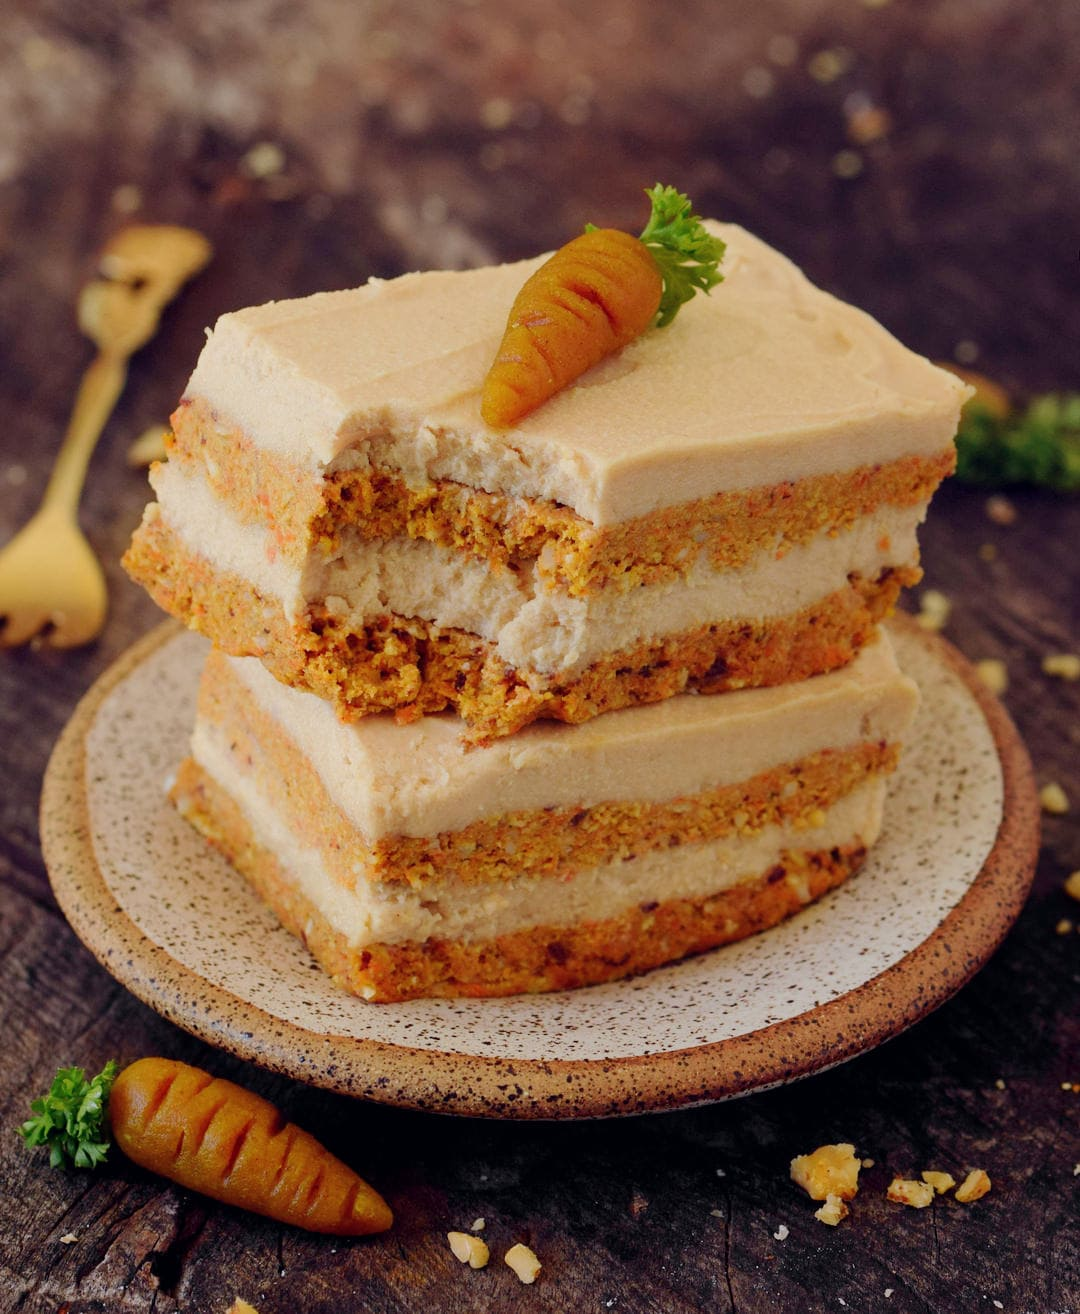 How To Make Fat Free Carrot Cake